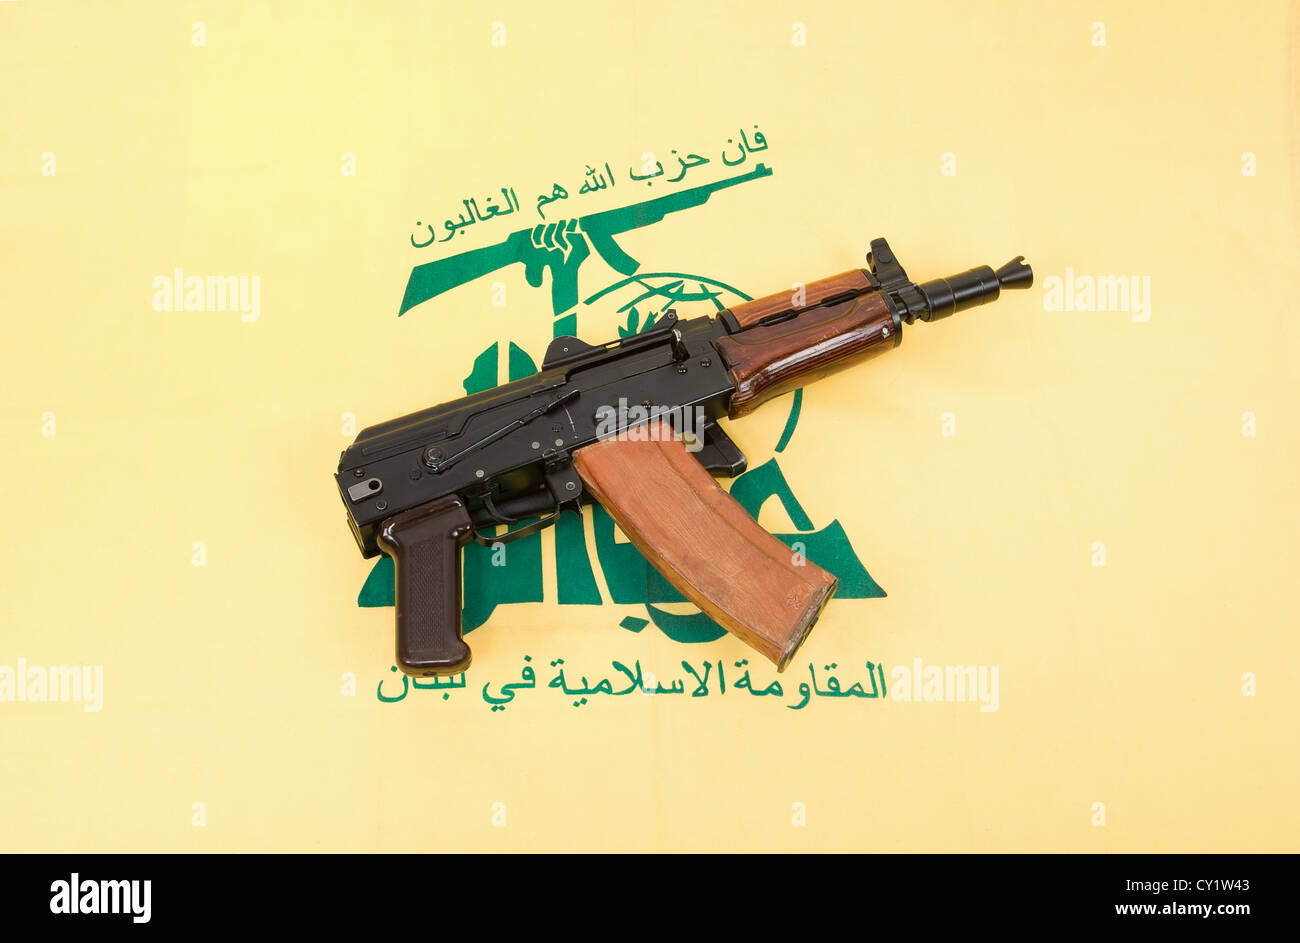 Automatic rifle and flag of Hezbollah - Stock Image